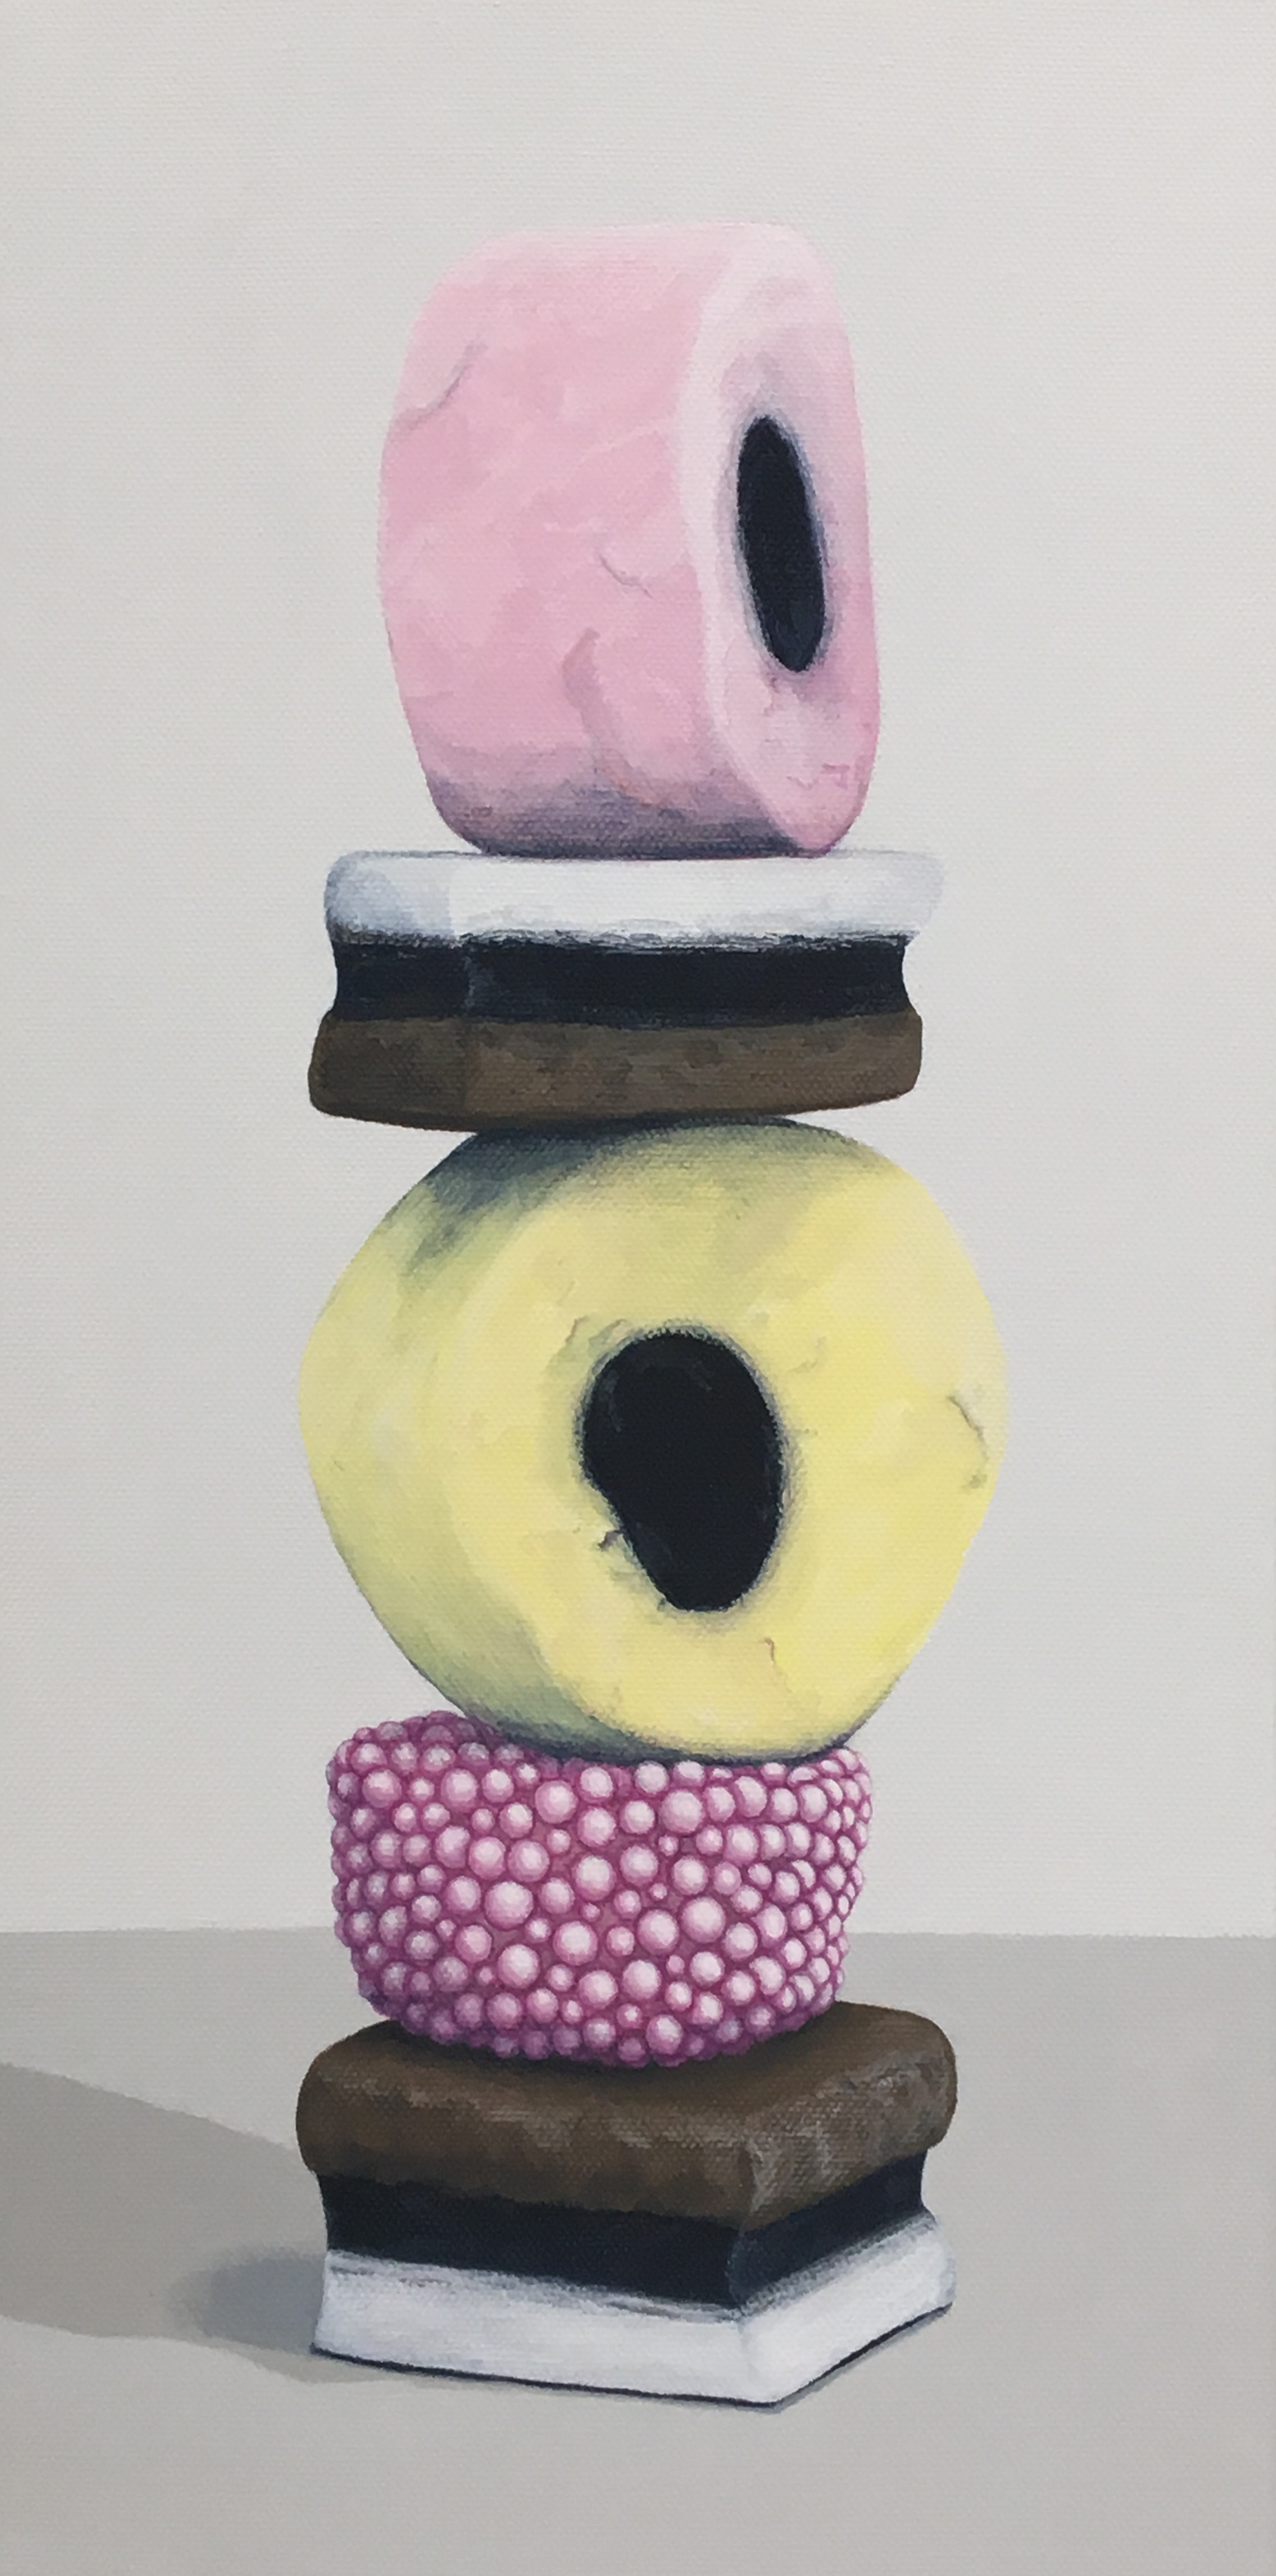 """Totem: Allsorts IV   This enticing candy stacks is a delightful temptation. As a culture we are generally attracted to these charming colors and interesting shapes, but once the candy is experienced as a food there is often a mismatch between its attractiveness and its taste. This work explores the occurrence of the incongruity of appearance and experience.   Currently available through Simon Breitbard Fine Arts   http://sbfinearts.com ,  415-951-1969   8"""" x 16"""" gallery wrapped canvas  $400.00"""